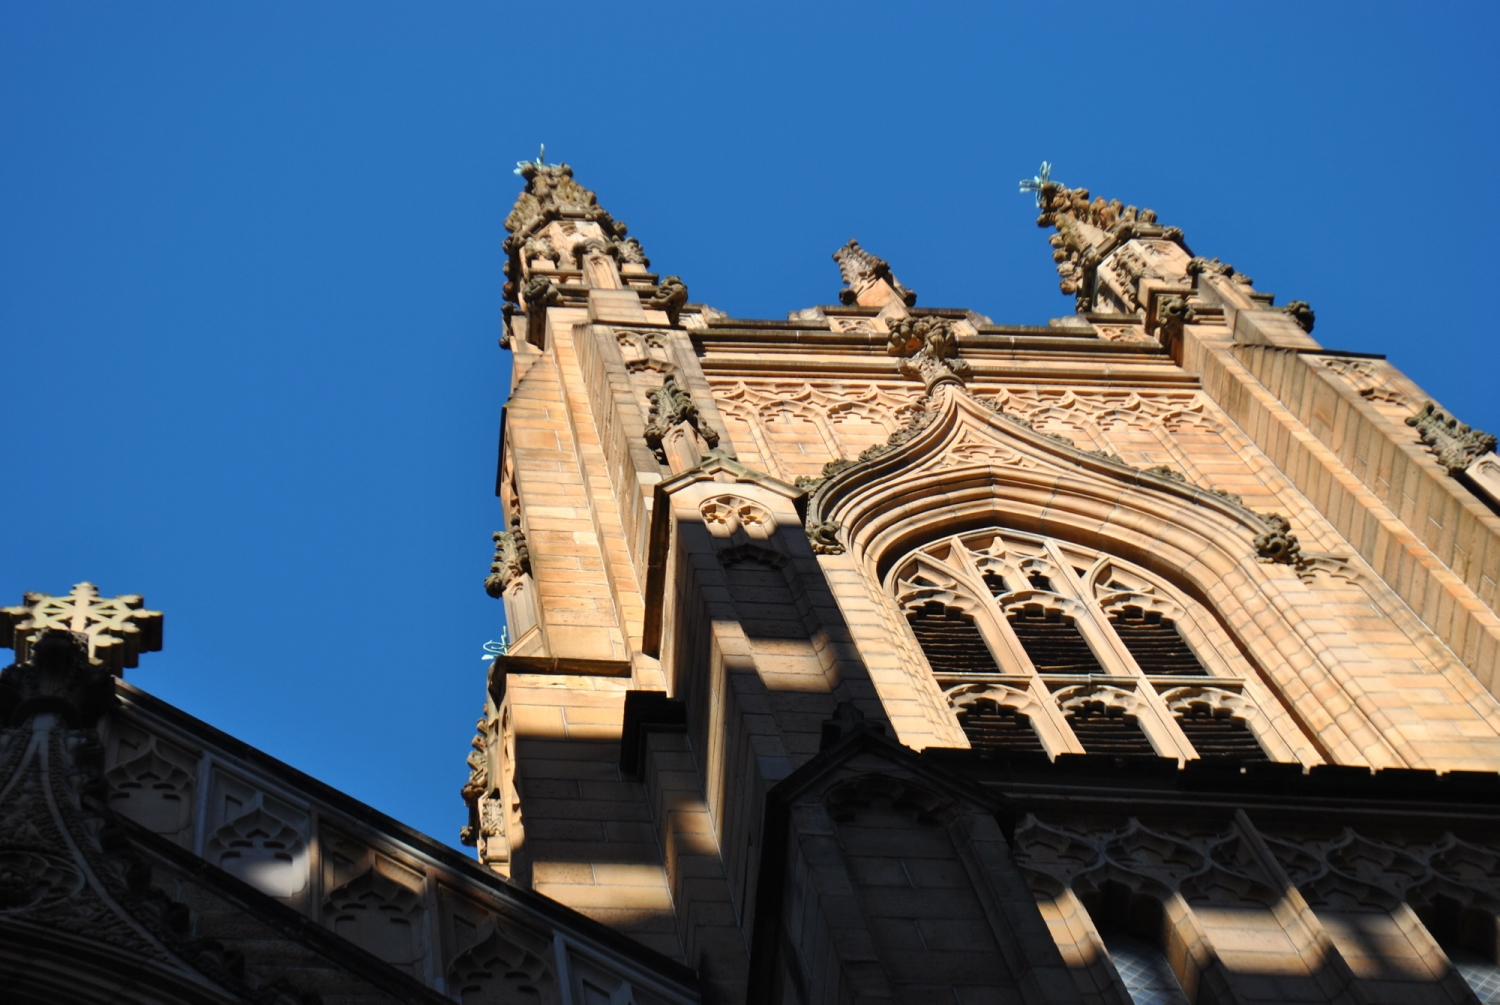 Looking up at front window of cathedral.